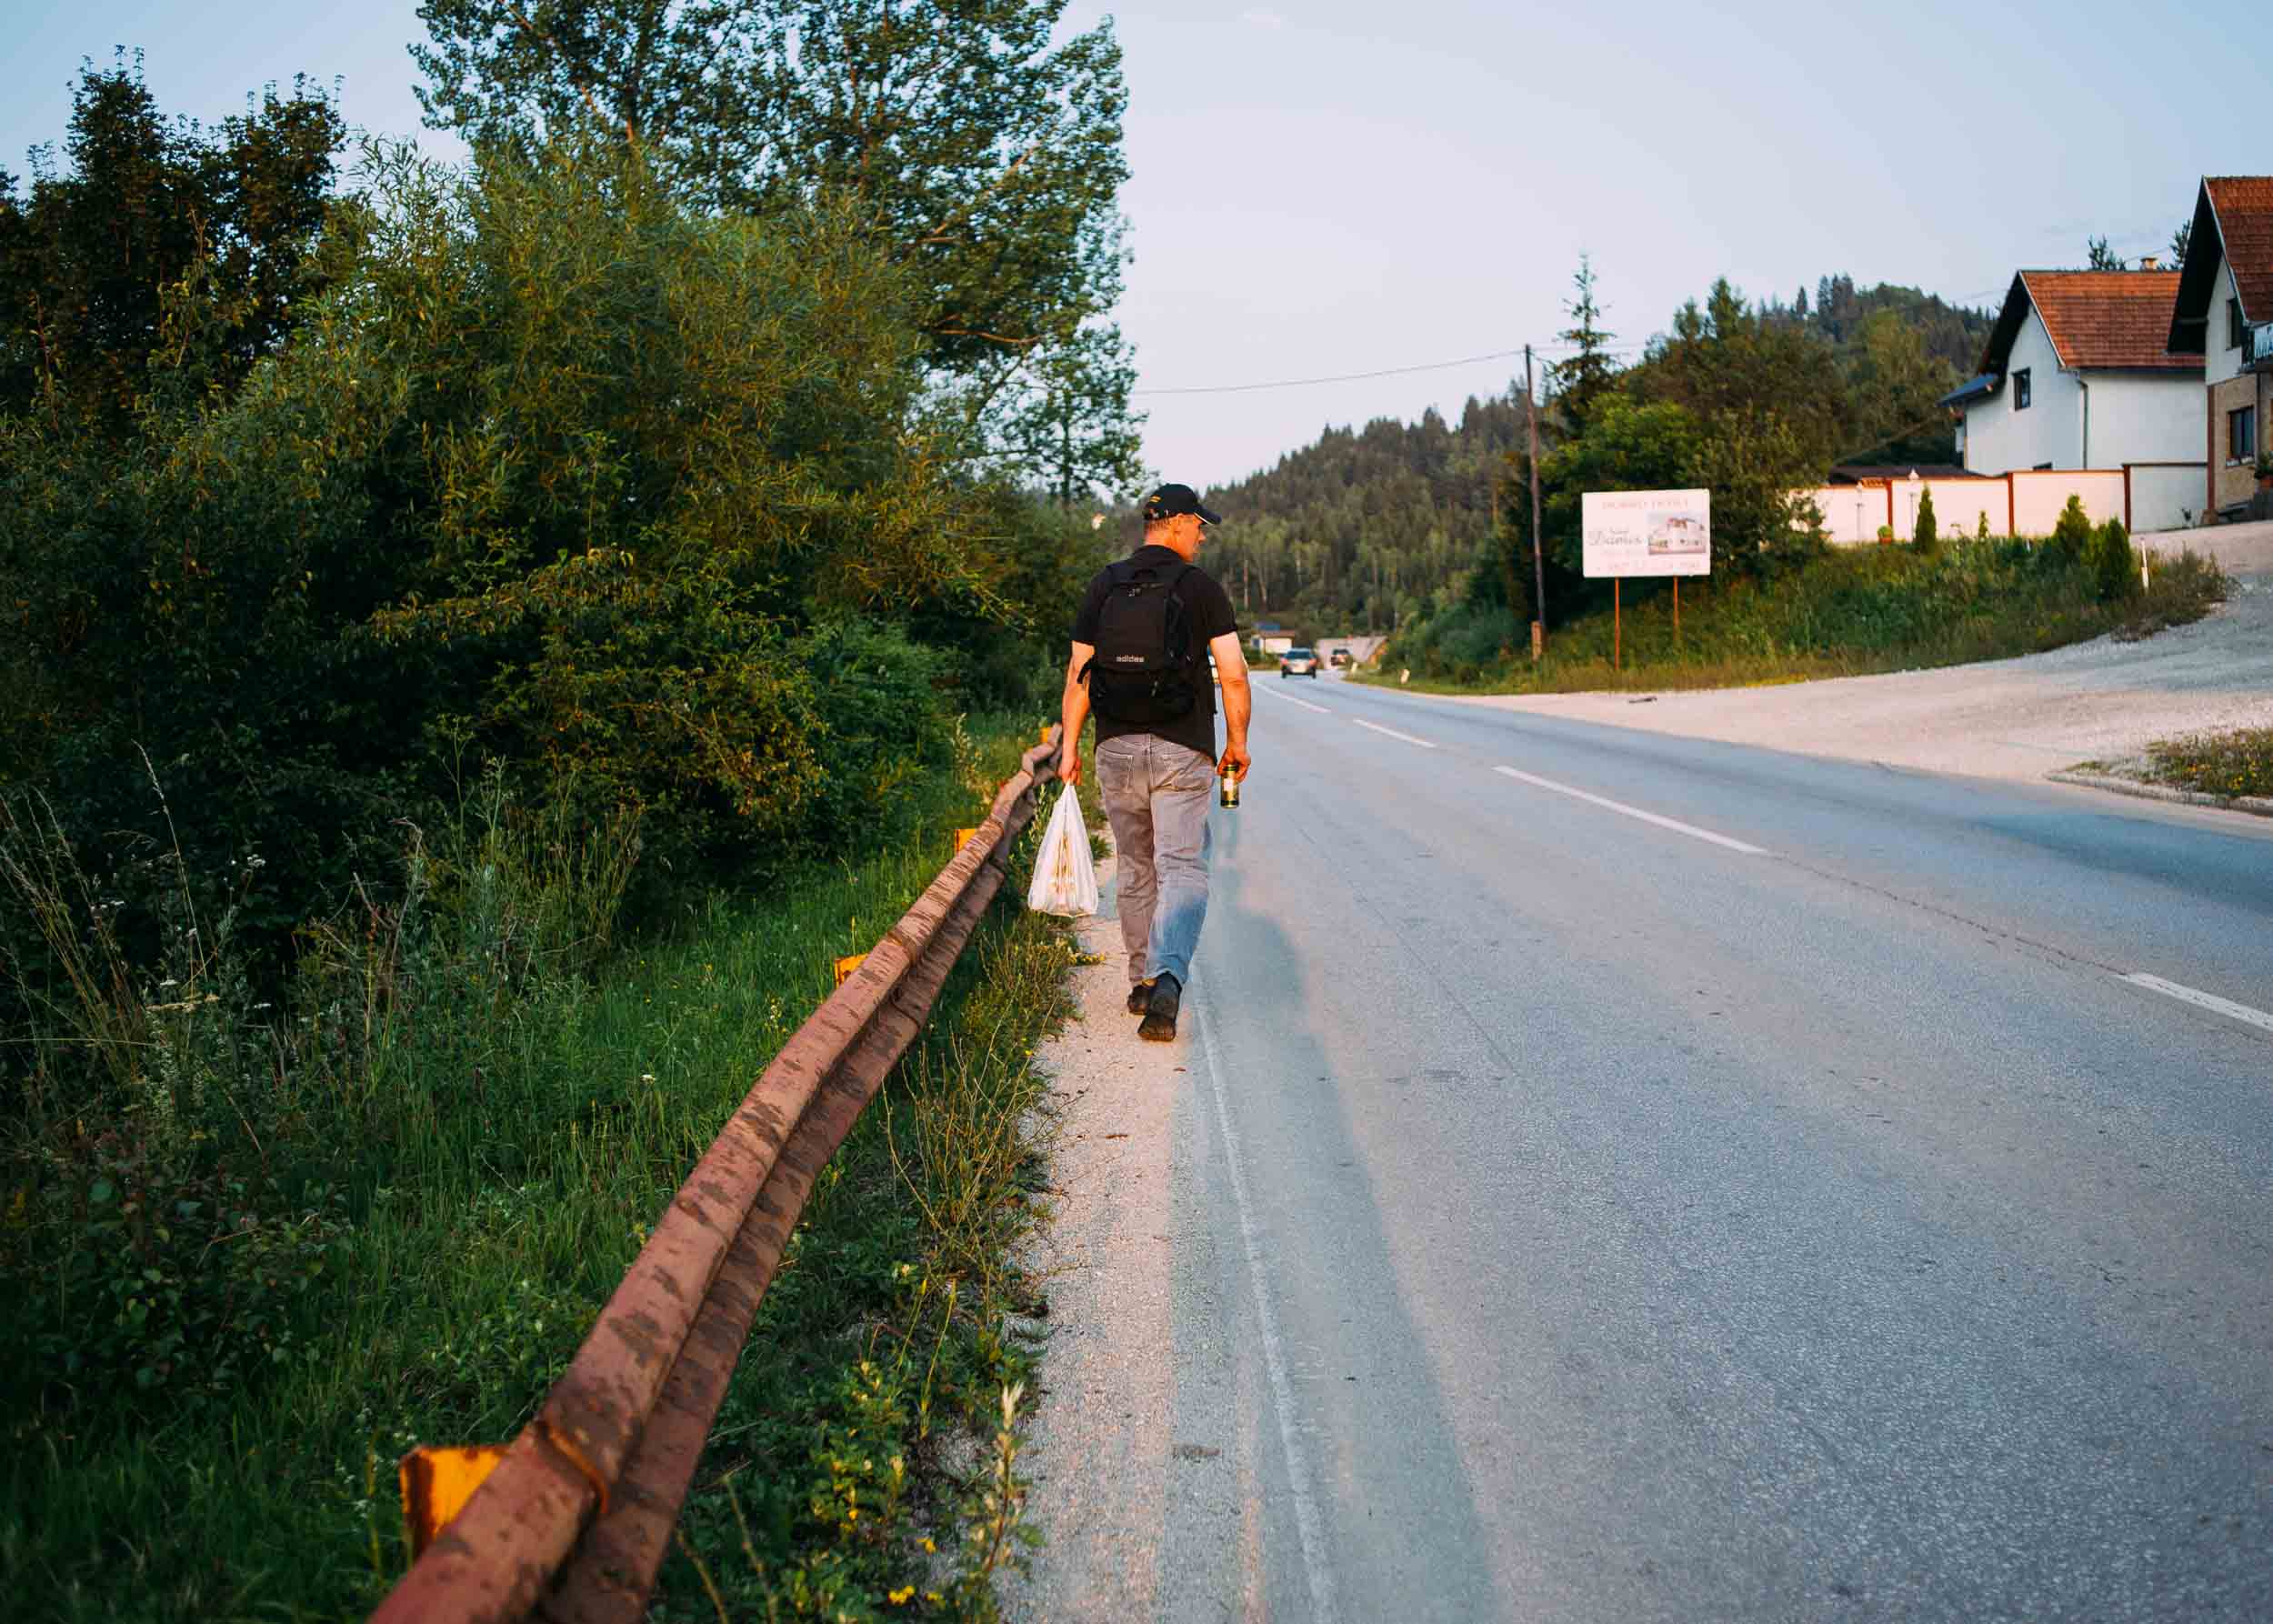 Walking the short distance from the bus stop to the house, Andrej constantly looks around him. He explains that the people there know that he is from Sarajevo and that in their former lives, they would have viewed each other as enemies.